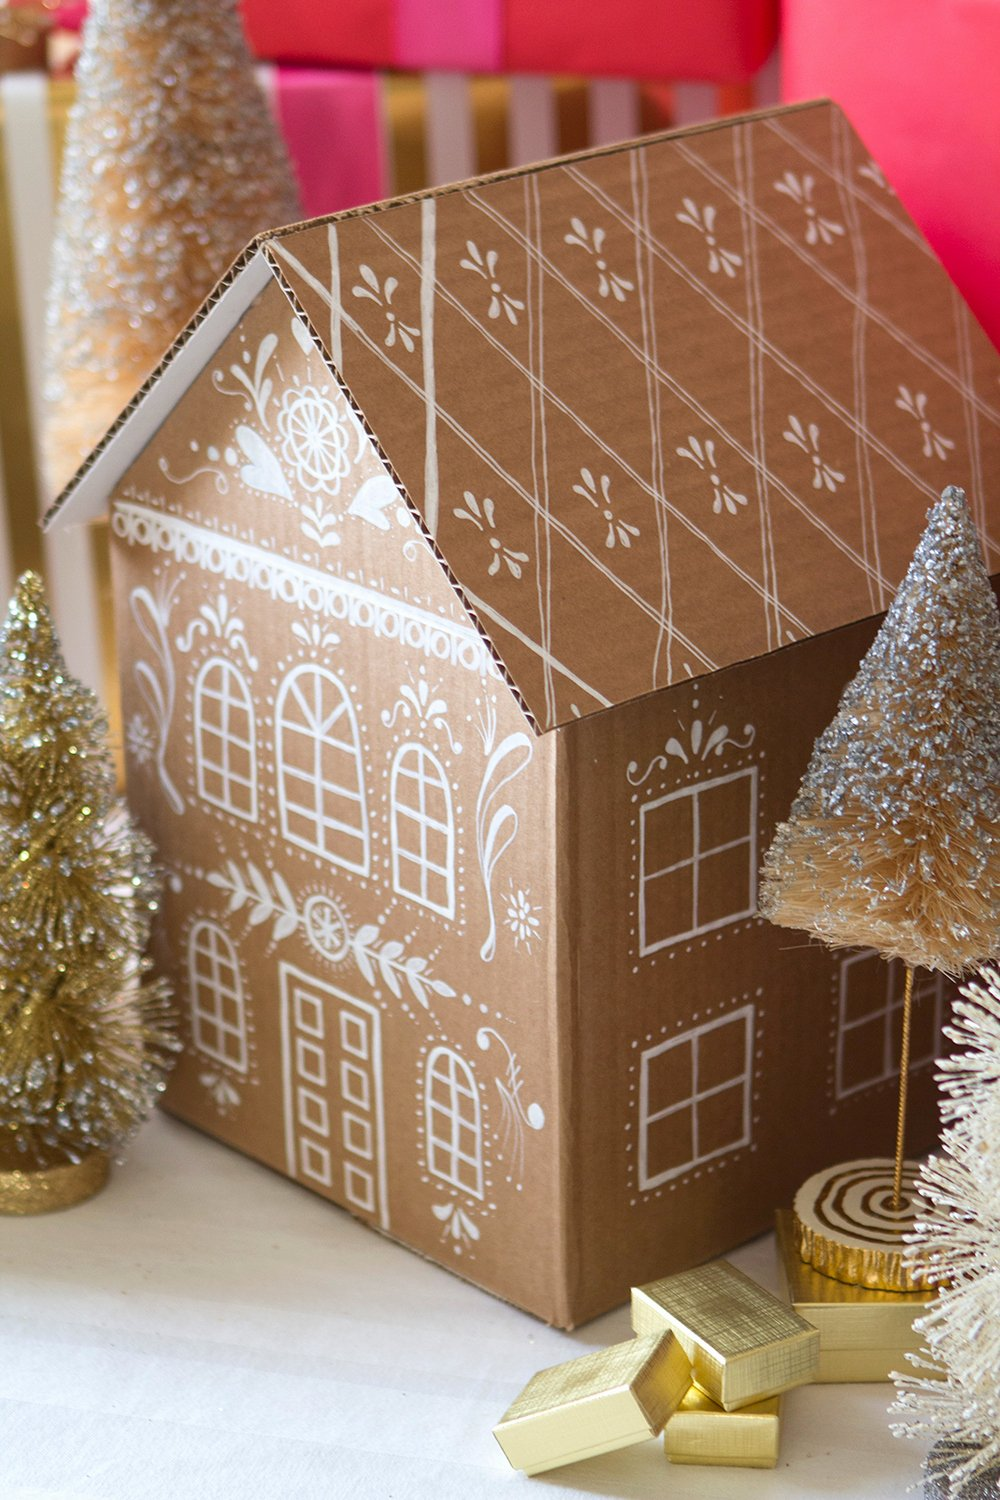 Cardboard Gingerbread House Luxury Diy Gingerbread House T Boxes